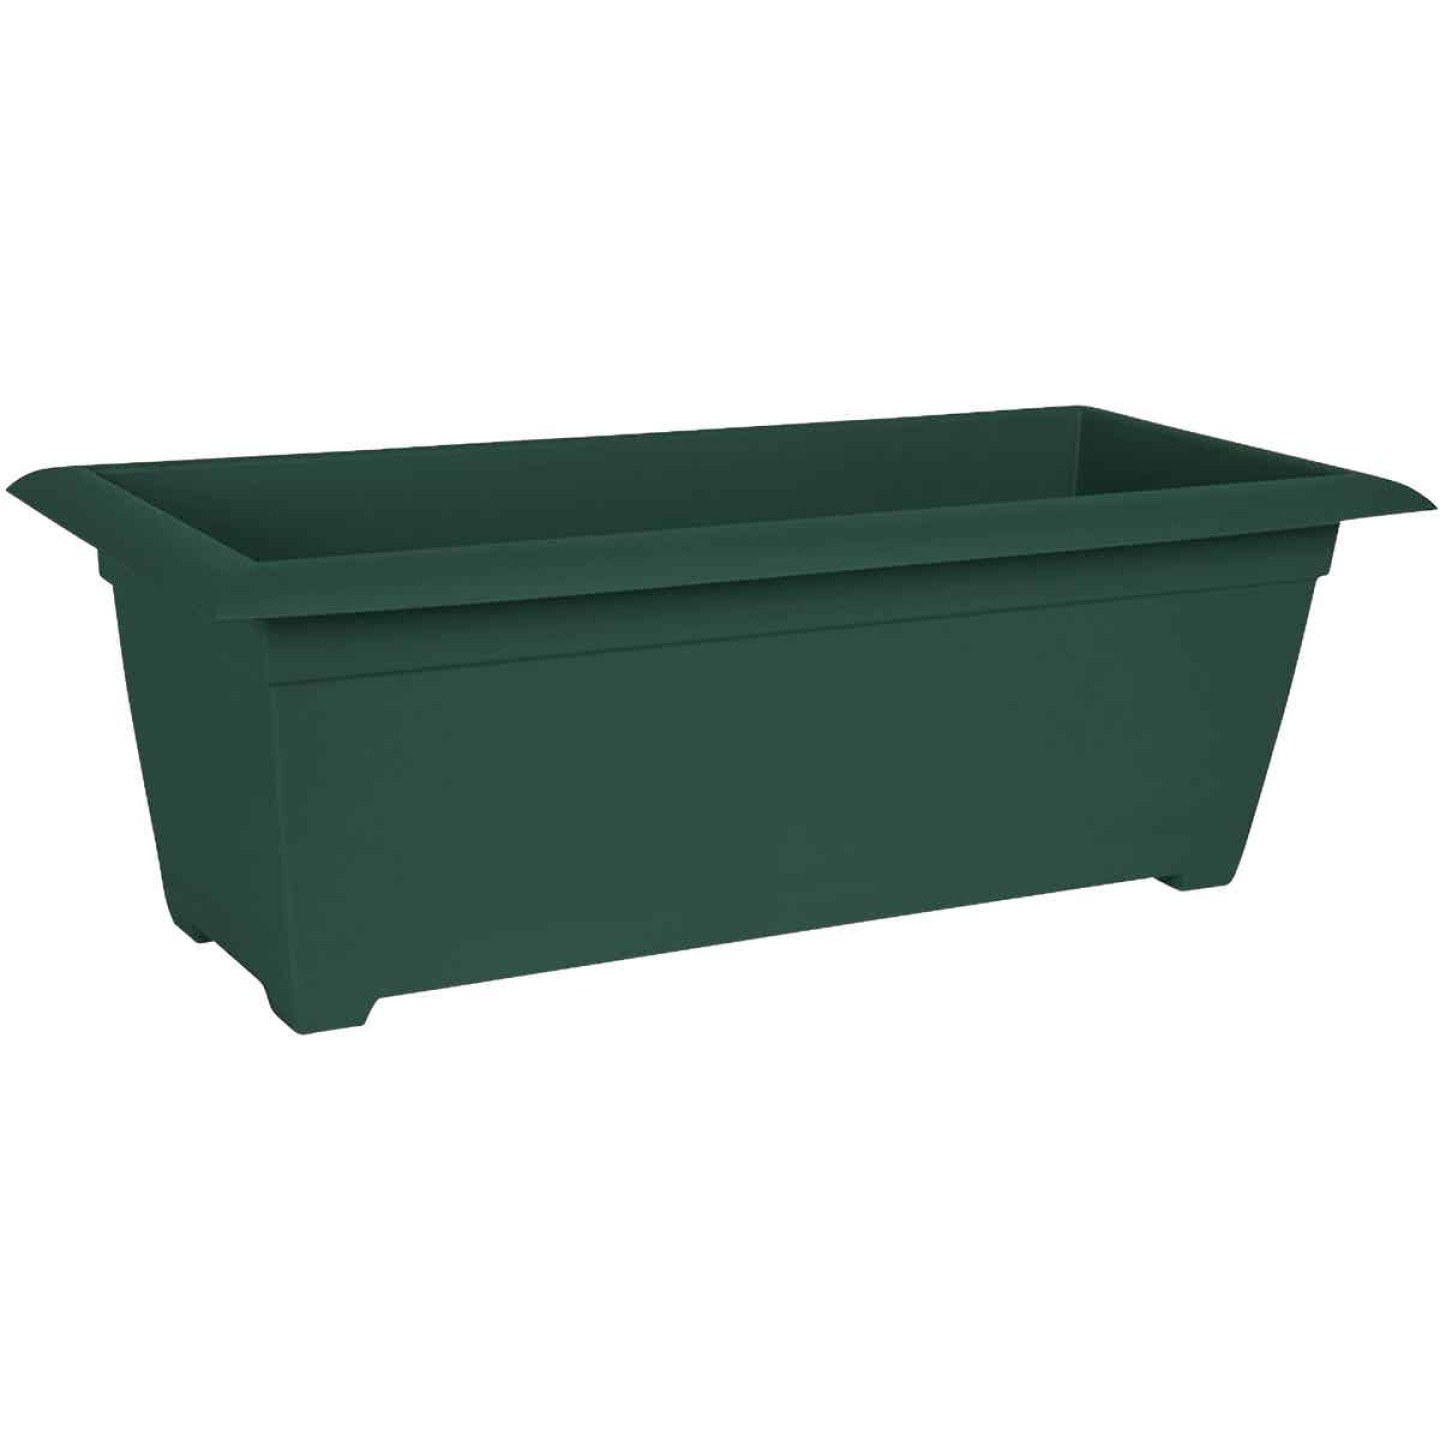 Bloem Ocean Series Dayton 27 In. W. x 9.38 In. H. Recycled Ocean Plastic Turtle Green Deck Box Image 1